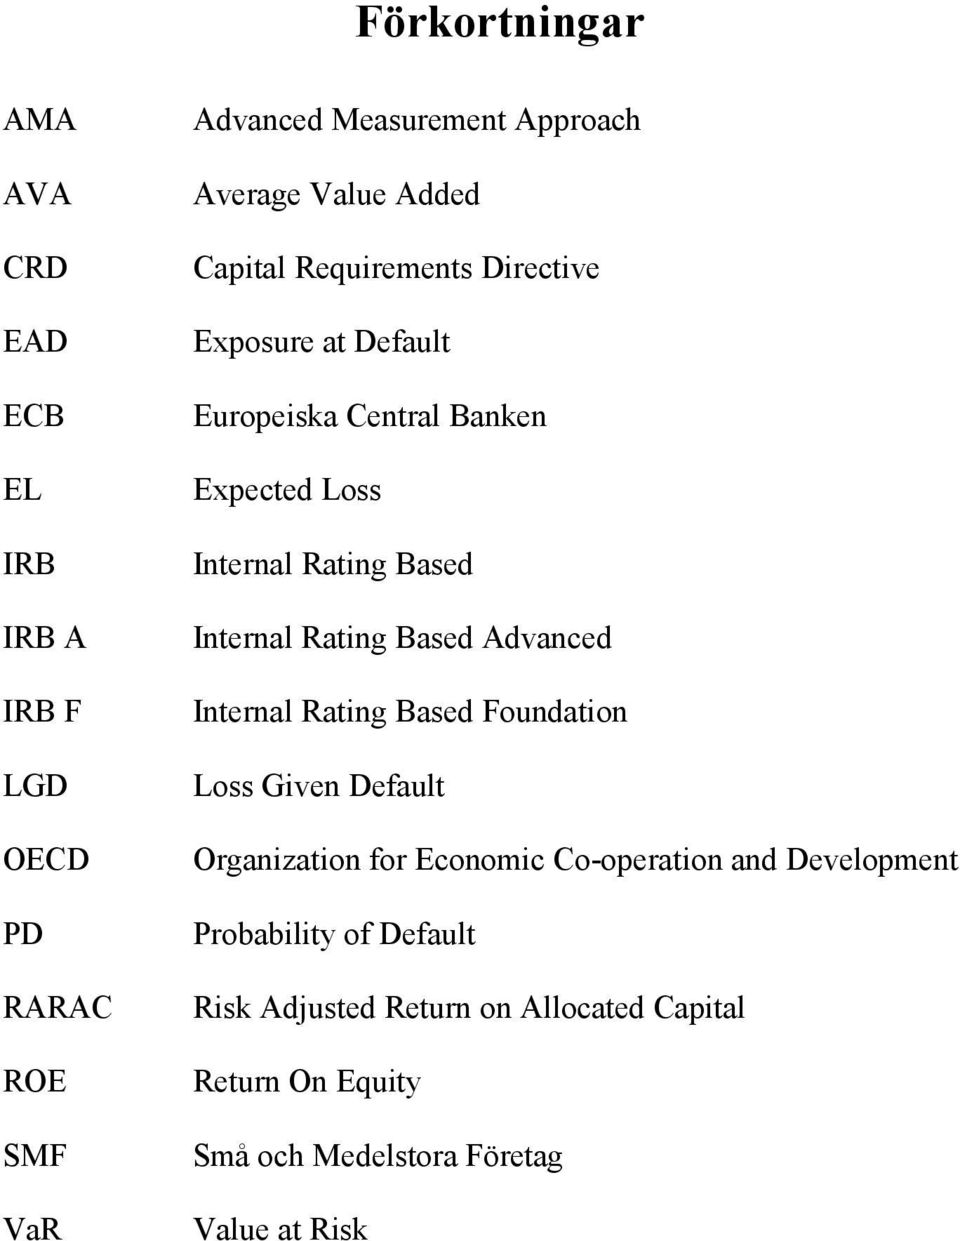 Internal Rating Based Advanced Internal Rating Based Foundation Loss Given Default Organization for Economic Co-operation and